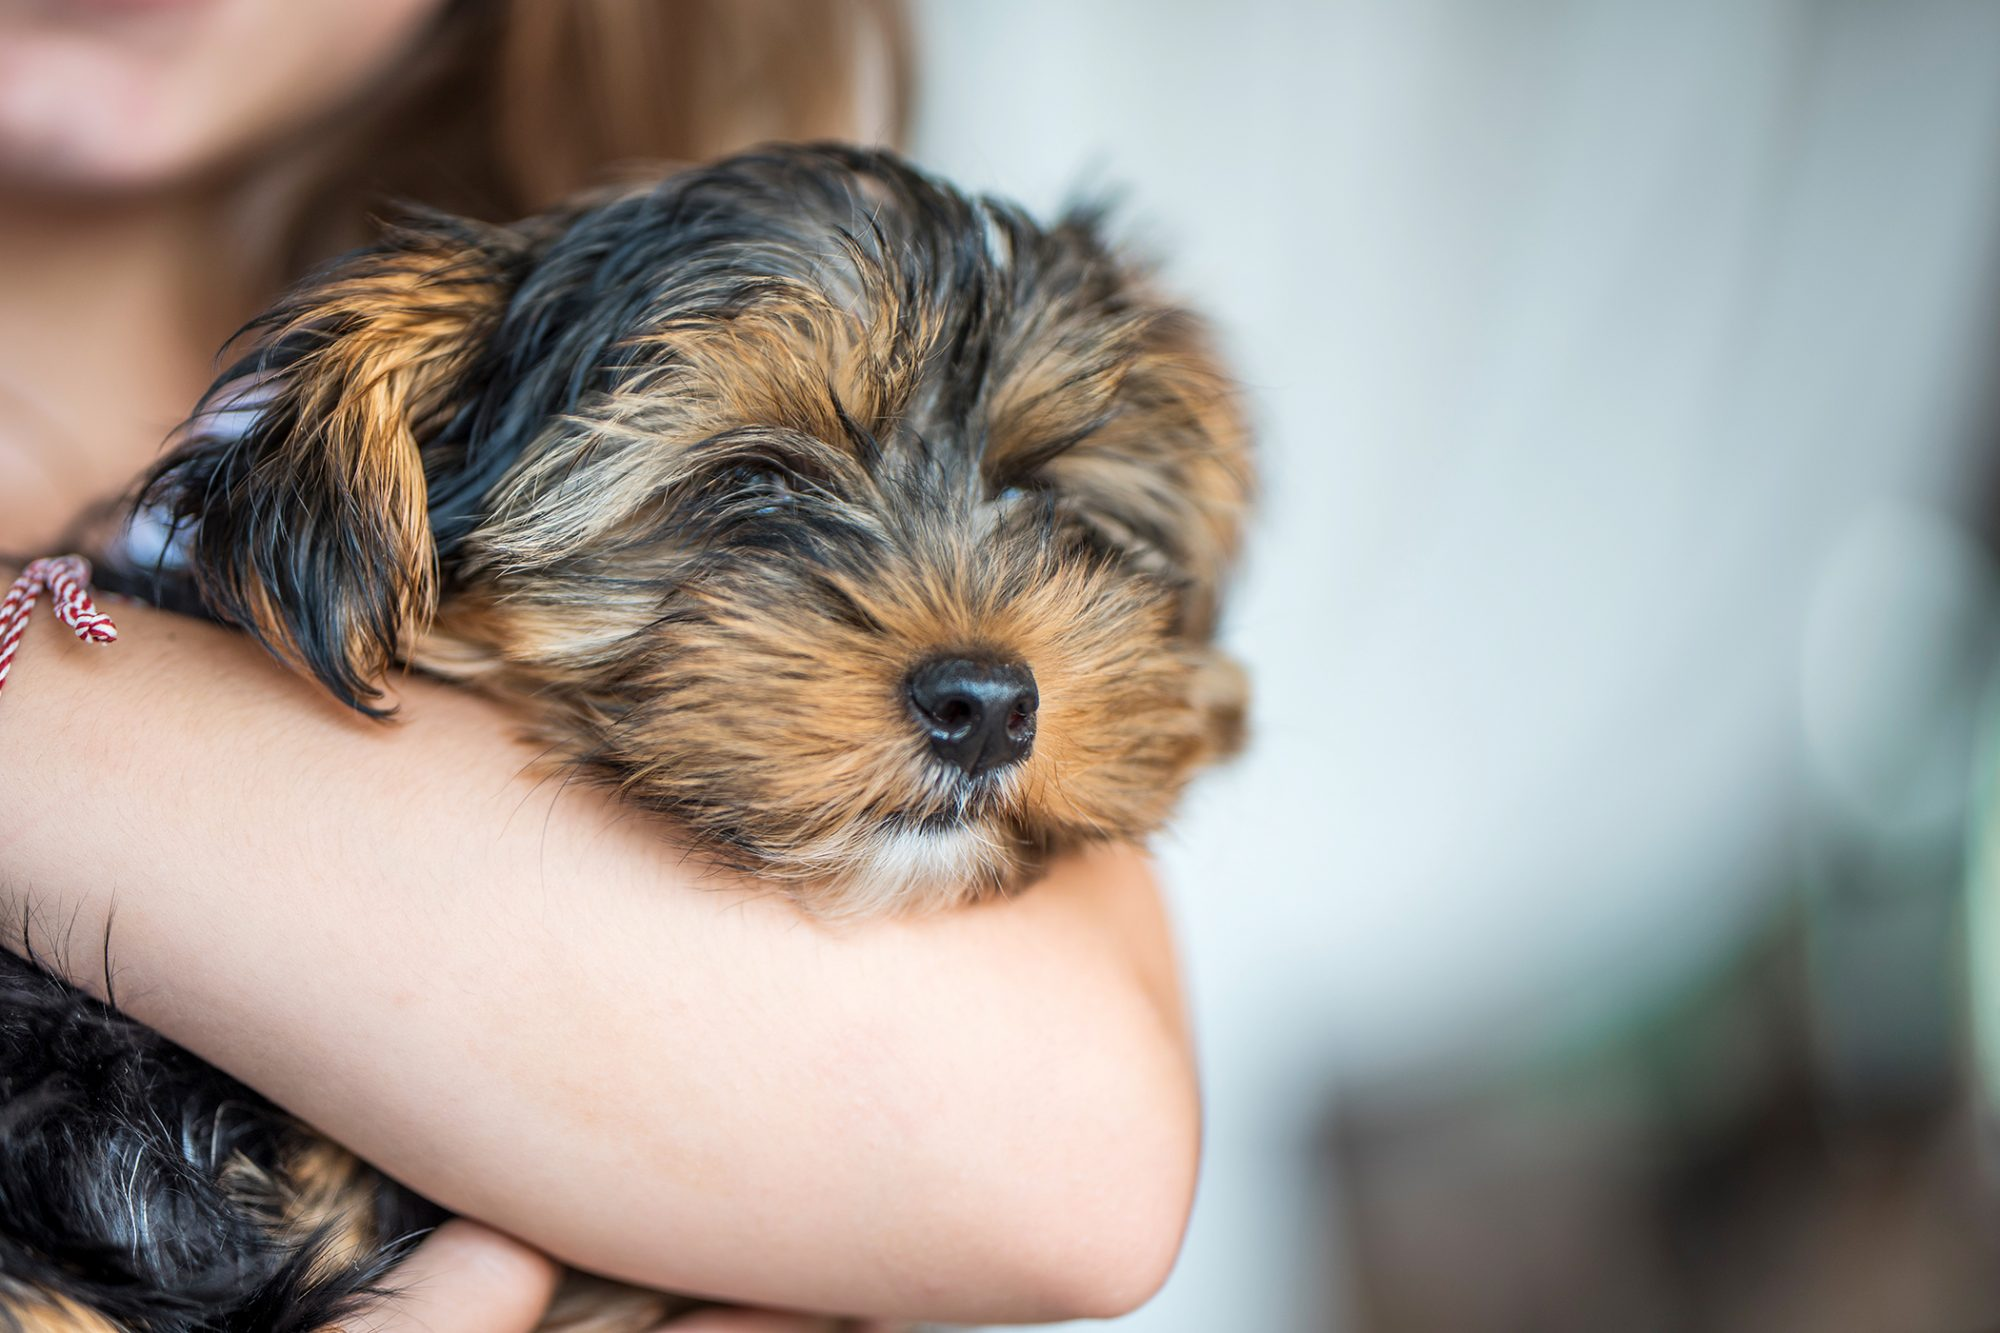 terrier puppy in girl's arm